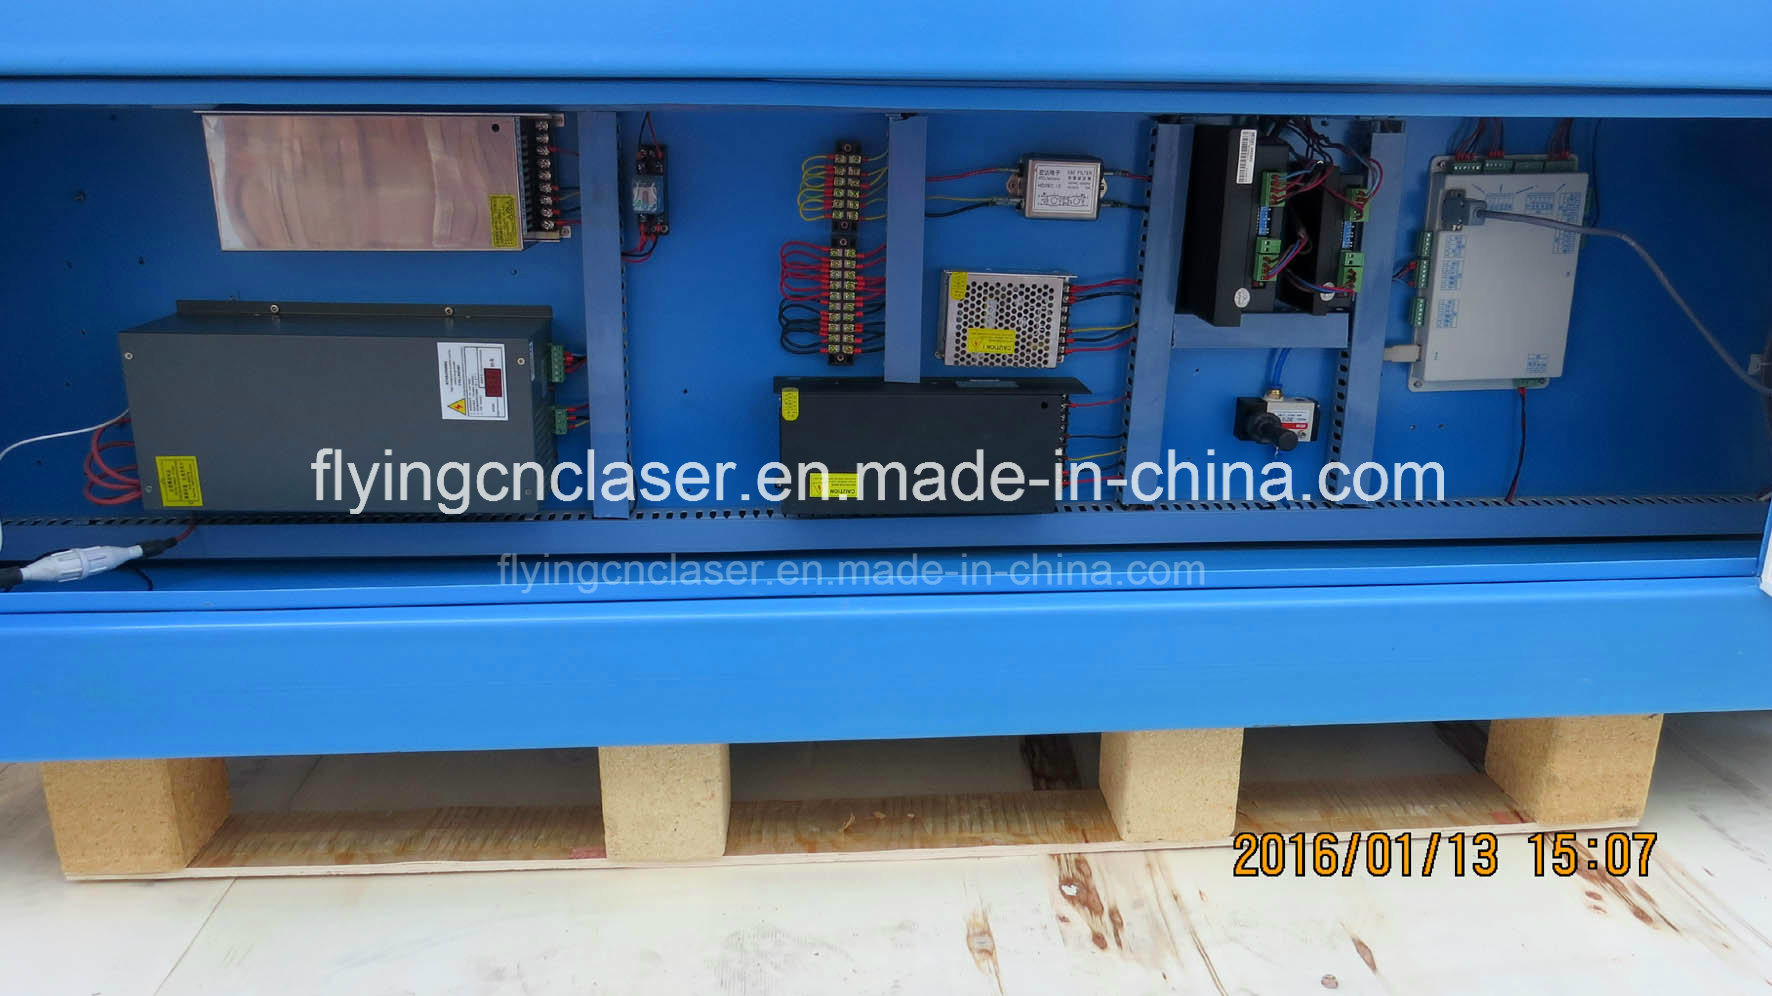 Professional CNC Laser Cutter Machine for Wood, Acrylic, Metal Cutting